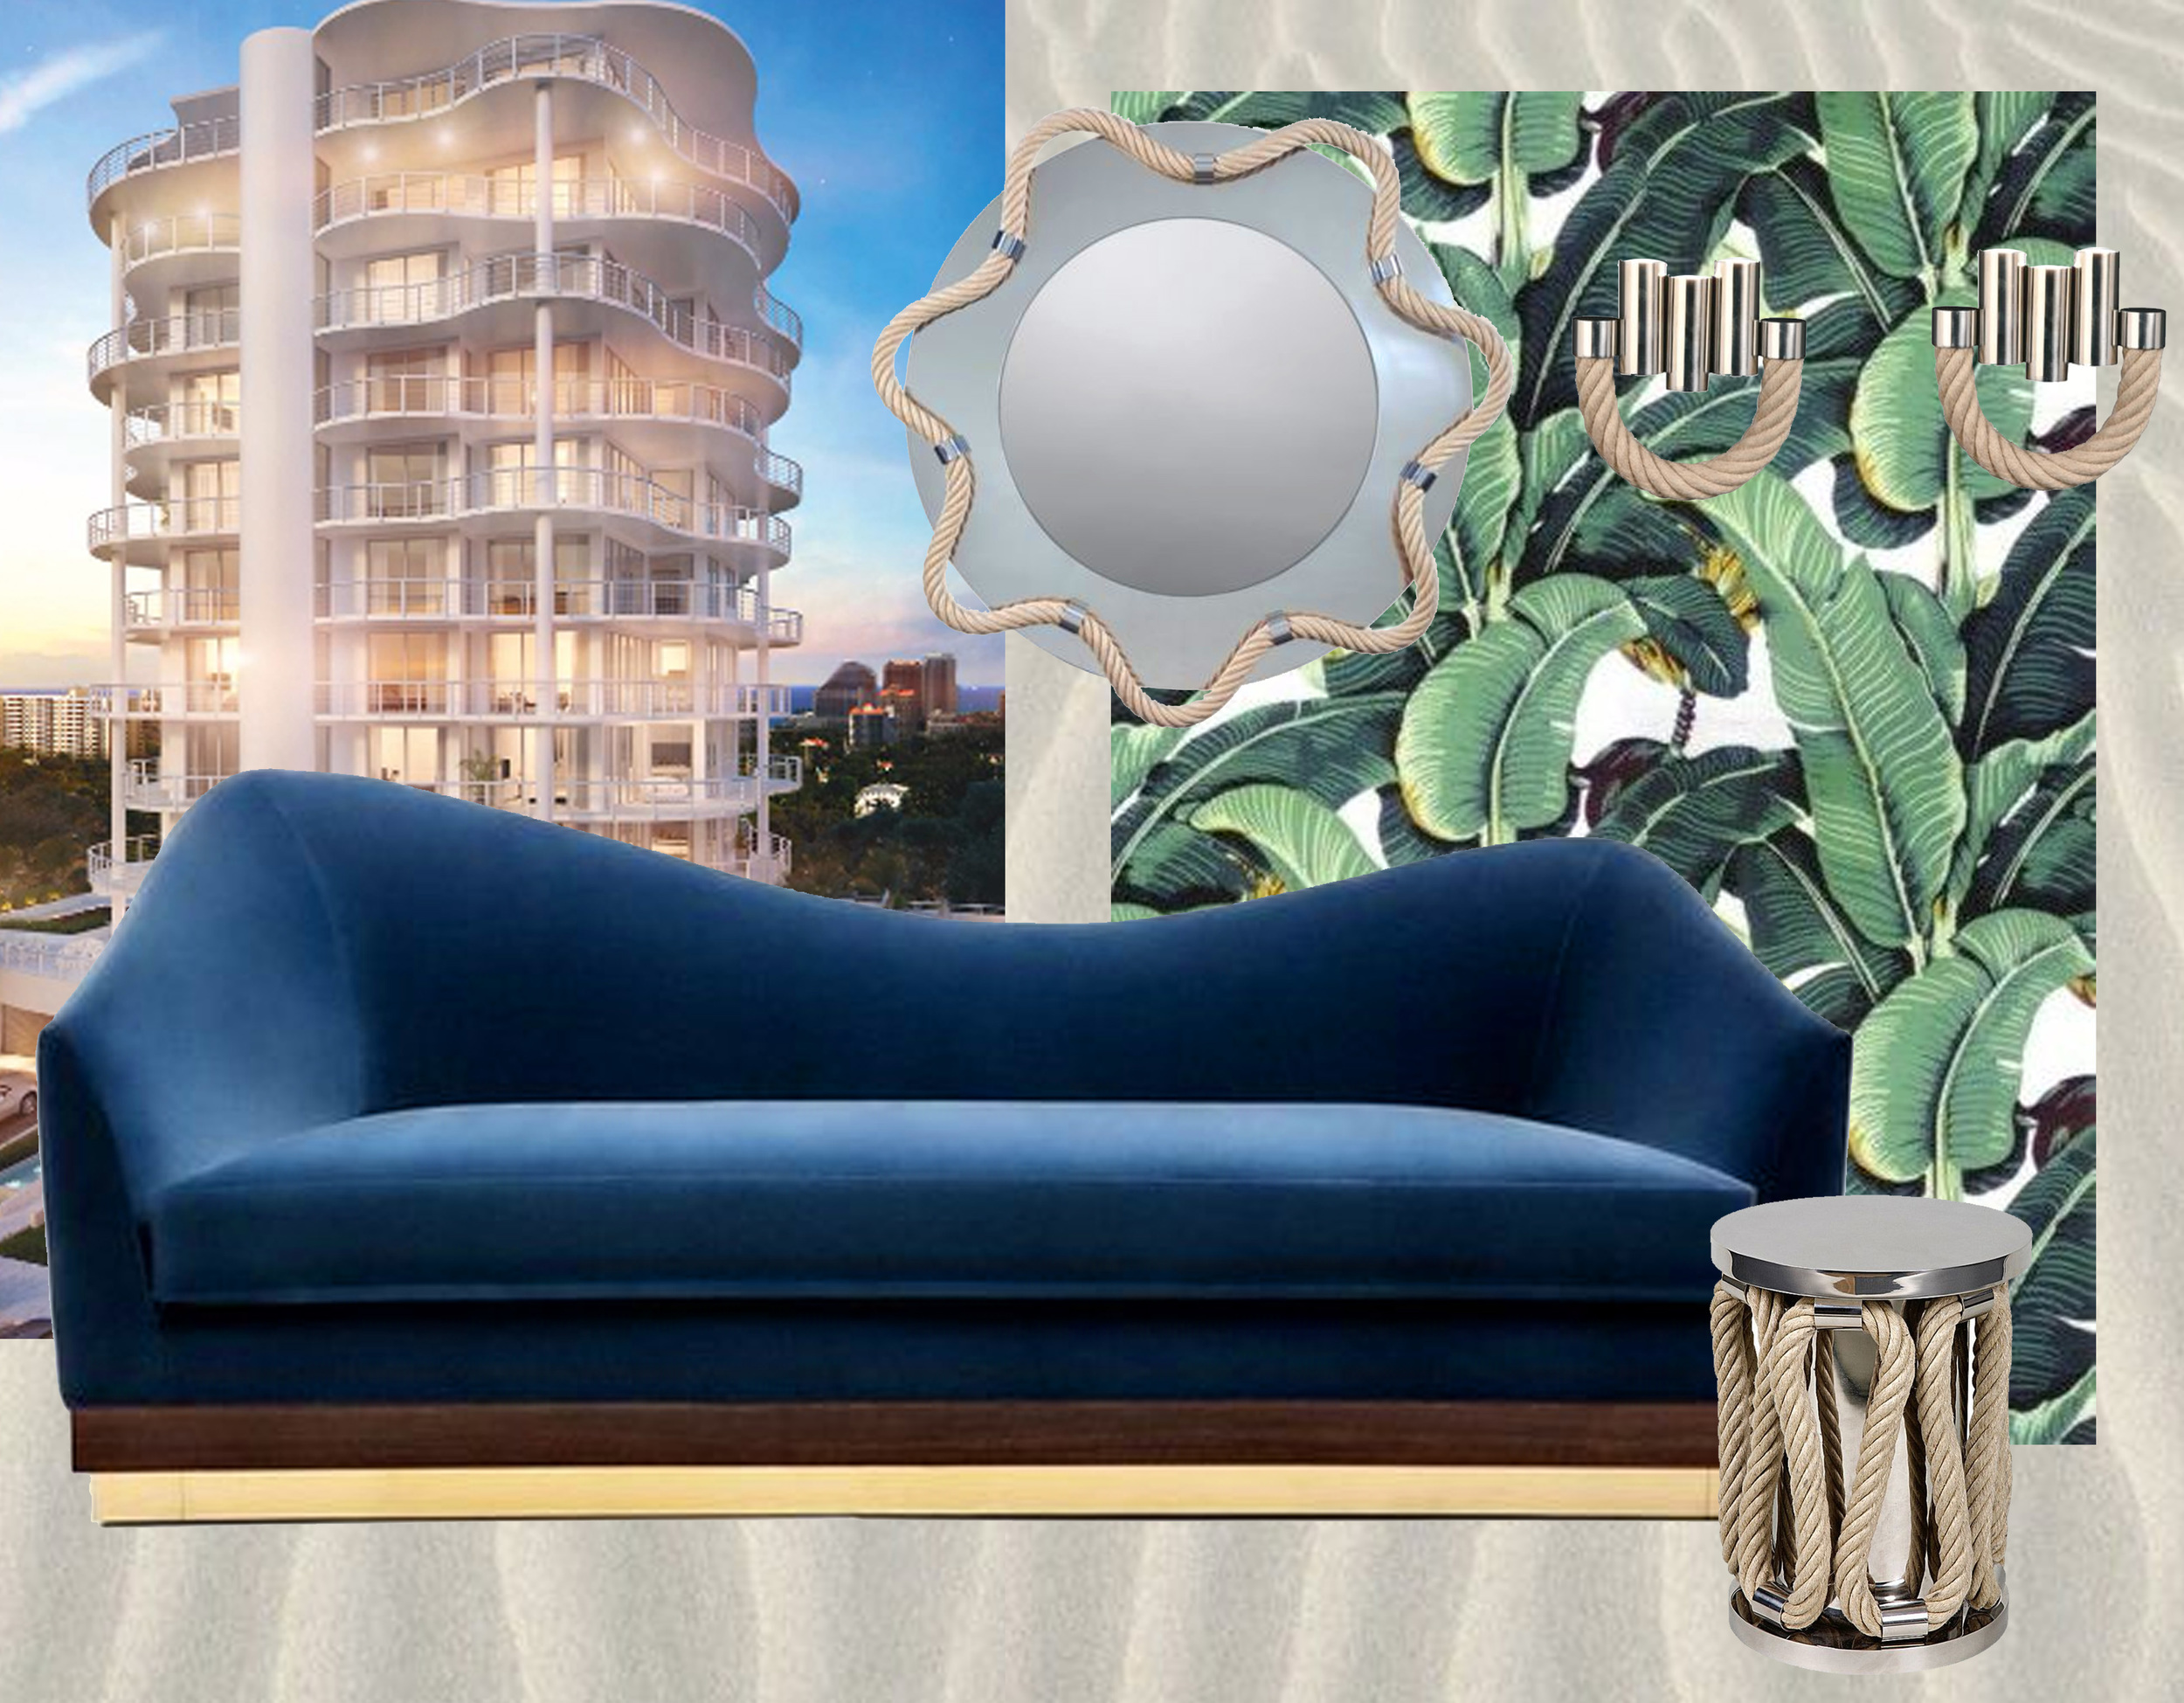 Douglas Elliman Real Estate  -  Martinique Banana Leave wallpaper designed by Don Loper in 1942 for the Beverly Hotel vi  A-Gent of Style  - velvet sofa Hughes  Munna  - mirror, wall lamp, and stool Sailor Thomas Boog for  Pouenat